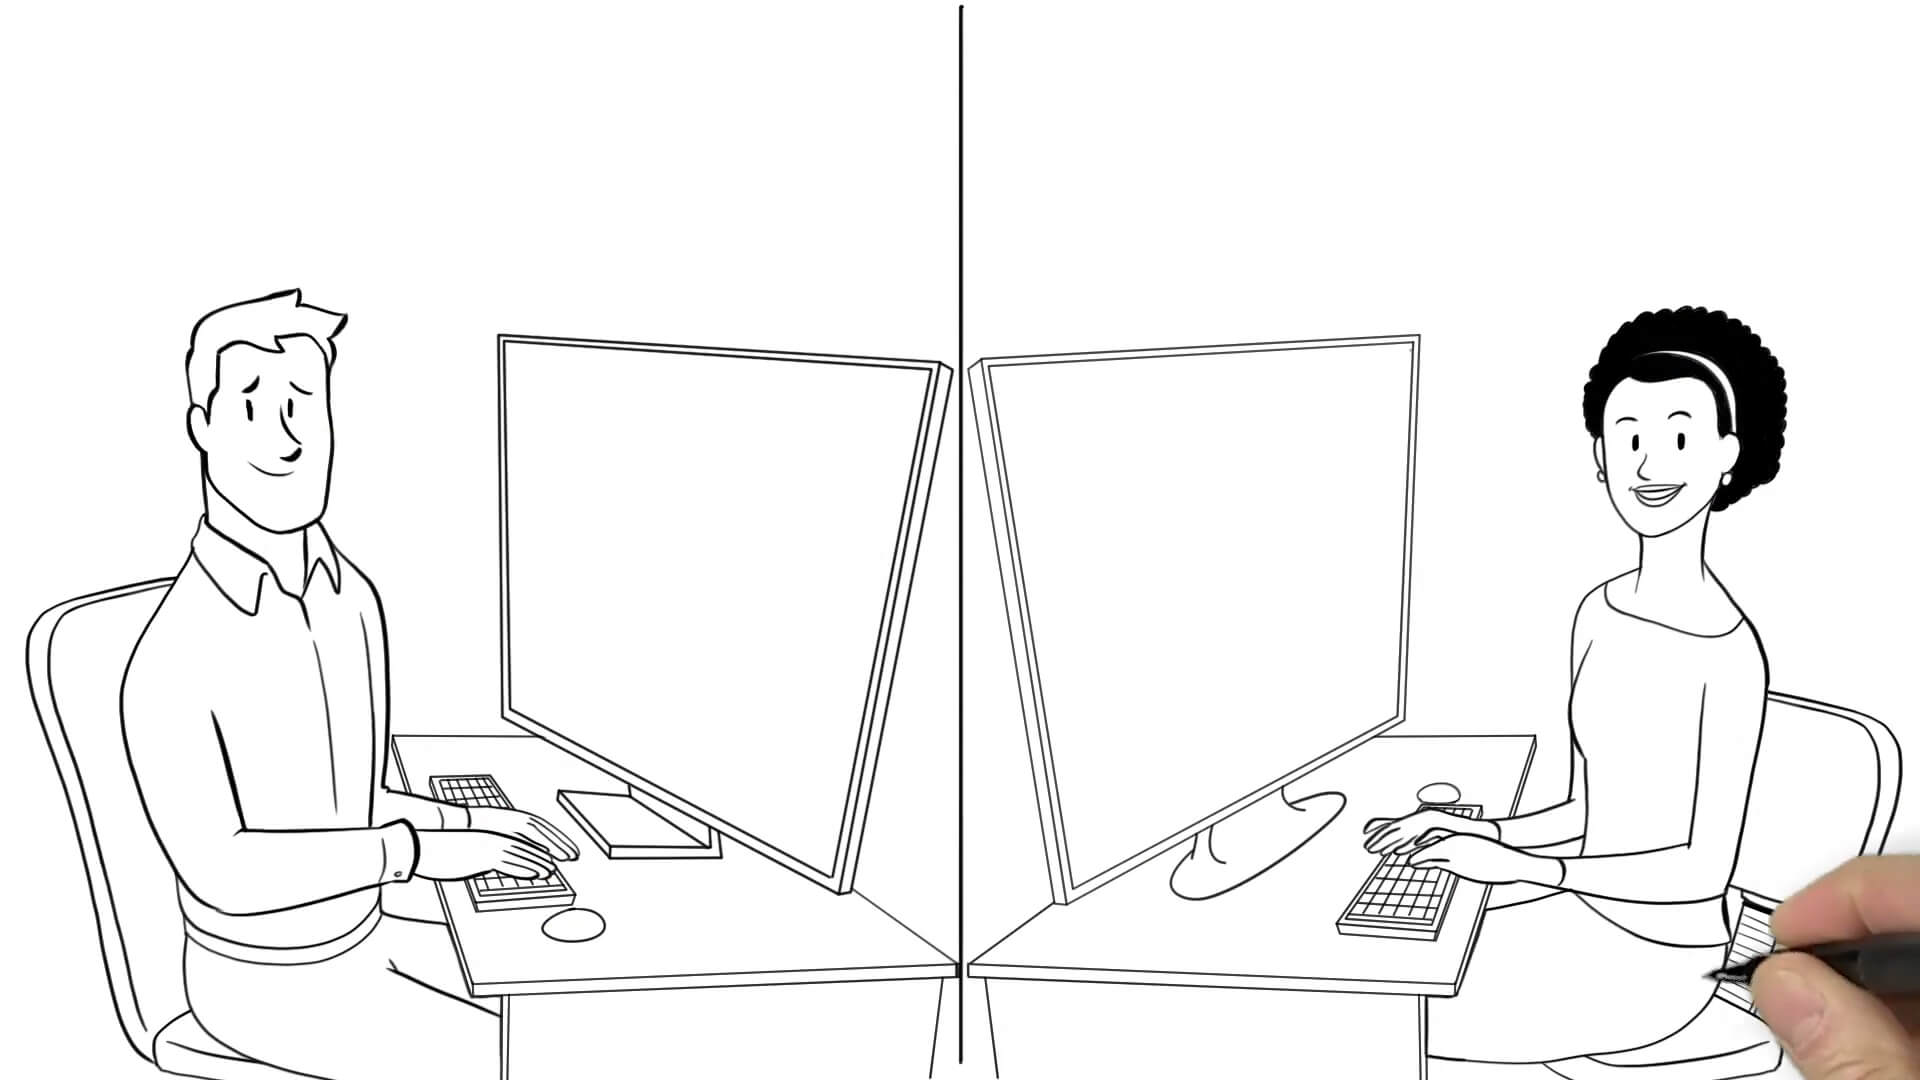 Whiteboard Animation Example